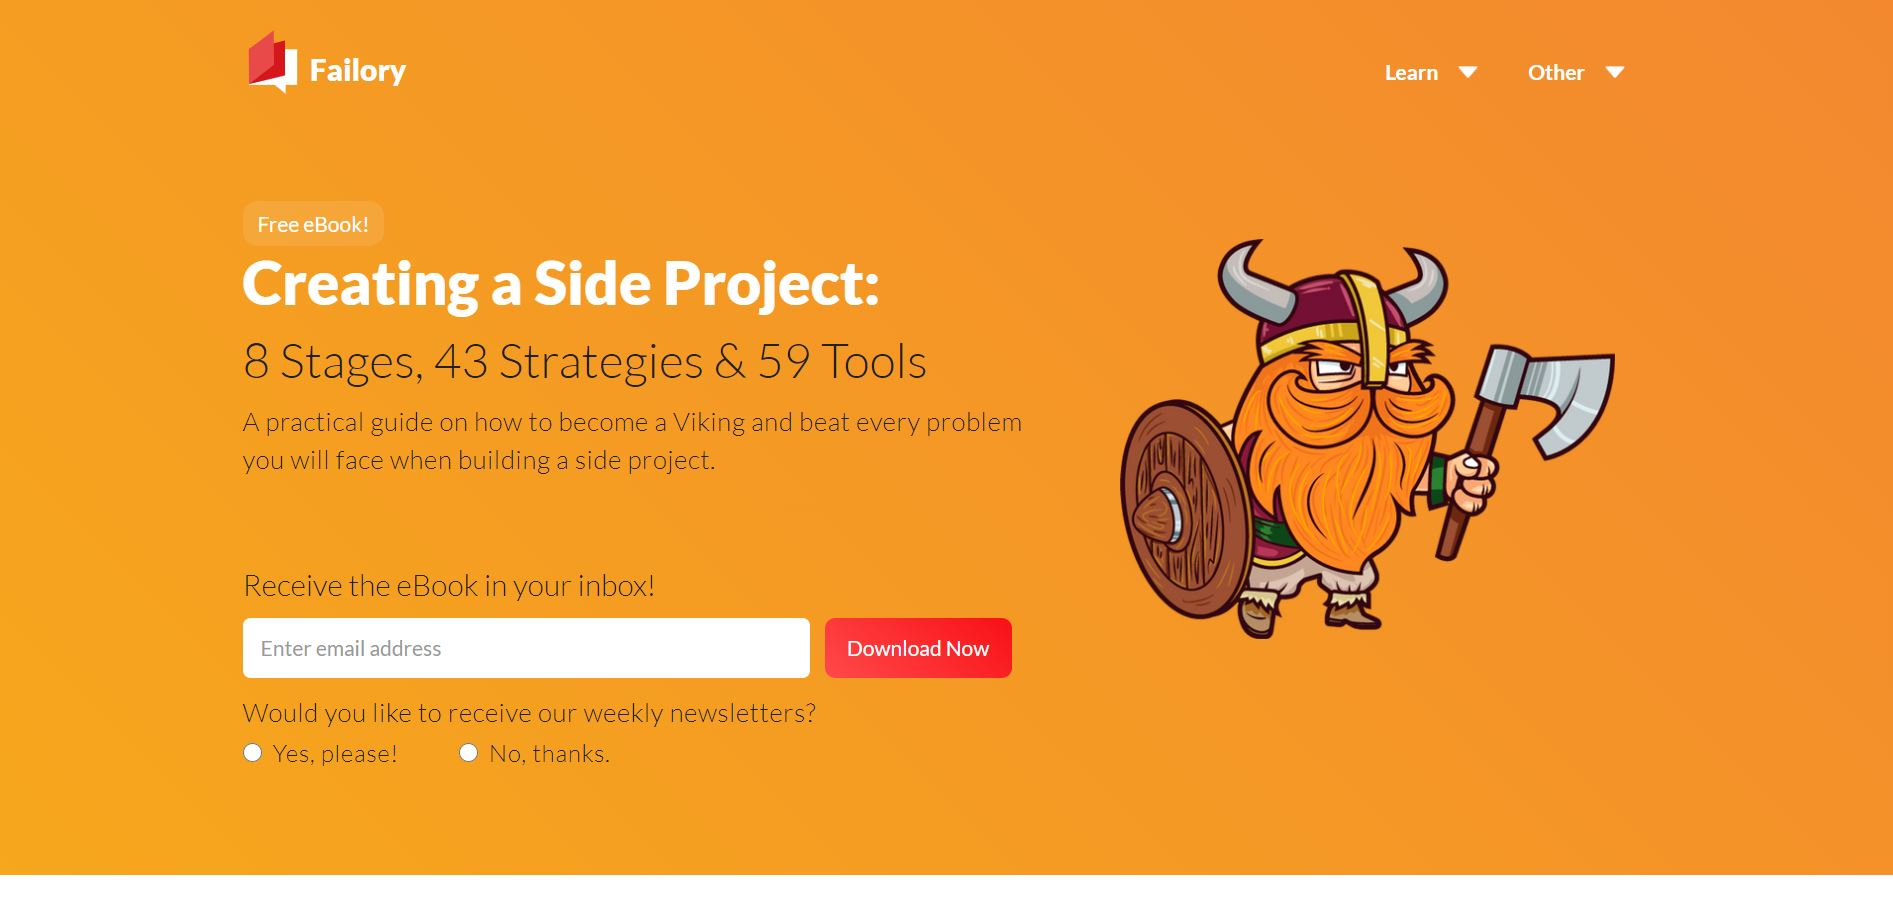 side project tools - failorysideprojects